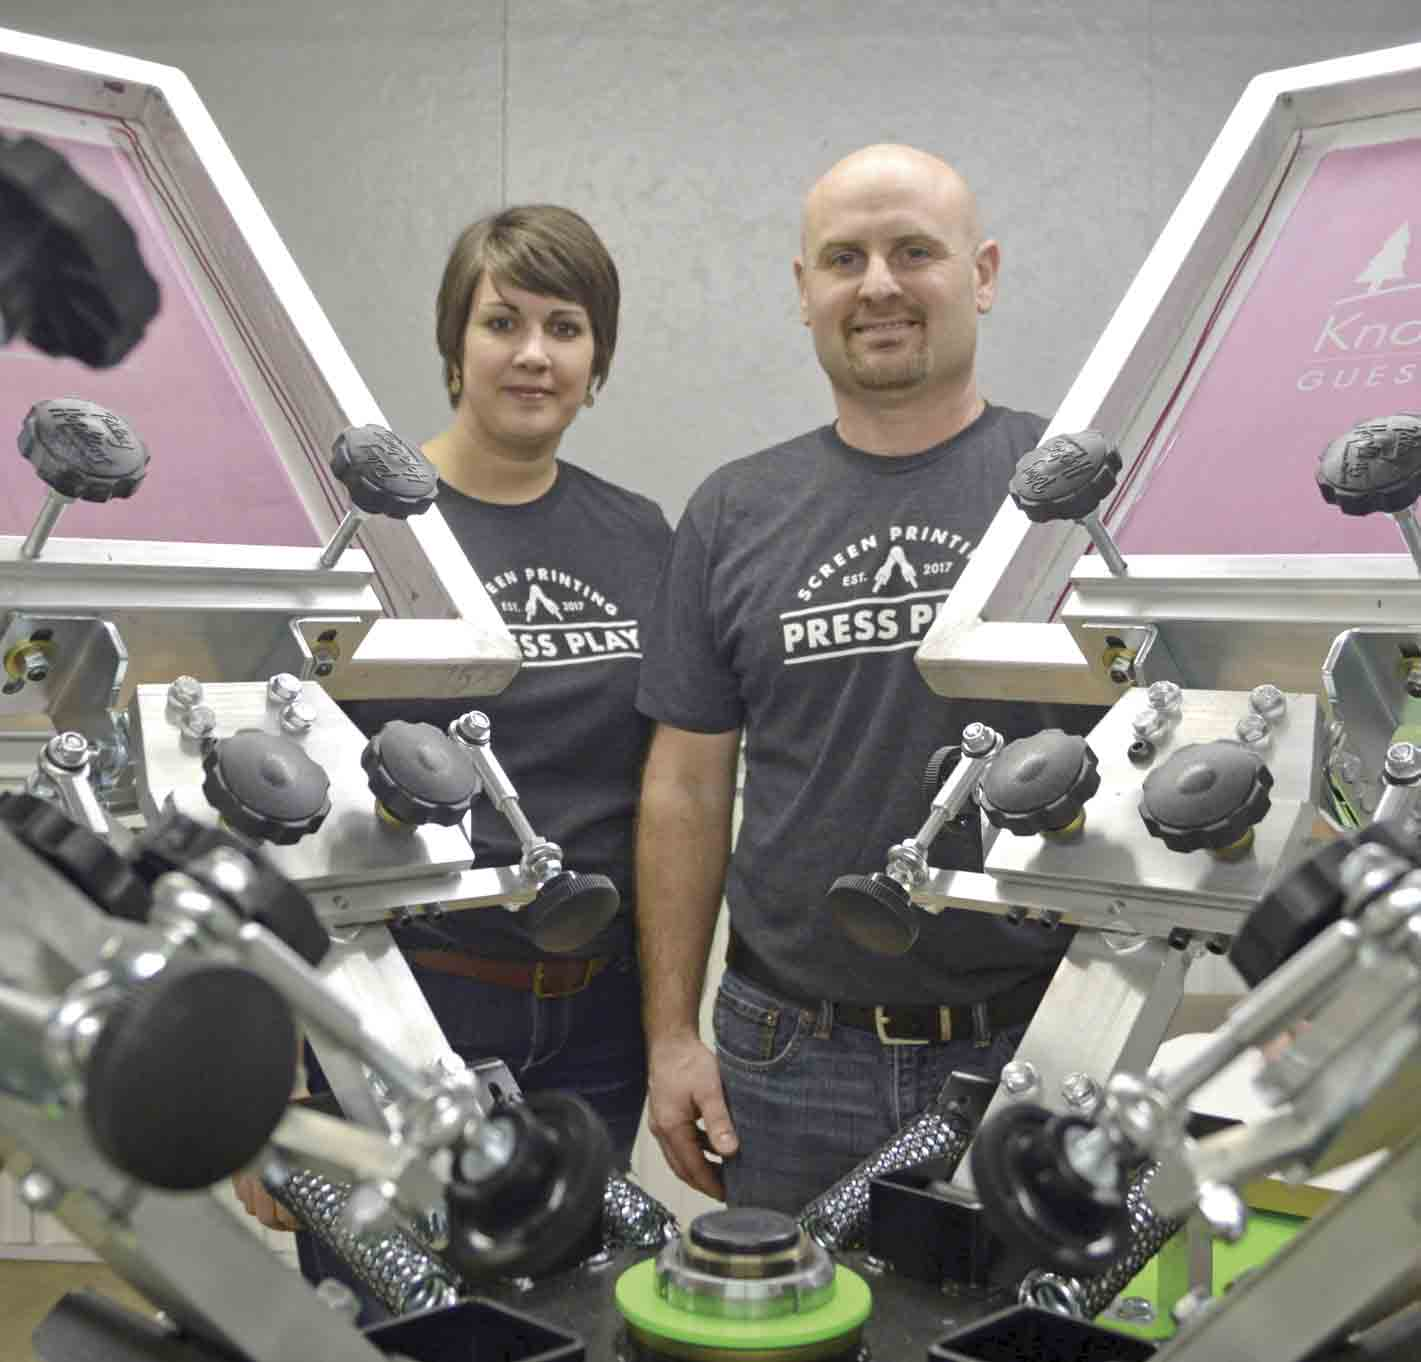 """Stacy and Jeremy Merrill of rural Fort Atkinson are excited about pressing """"play"""" on their new business adventure. The local couple recently opened the doors on the new screen printing business, fittingly named Press Play. (Zakary Kriener photo)Merrills 'Press..."""